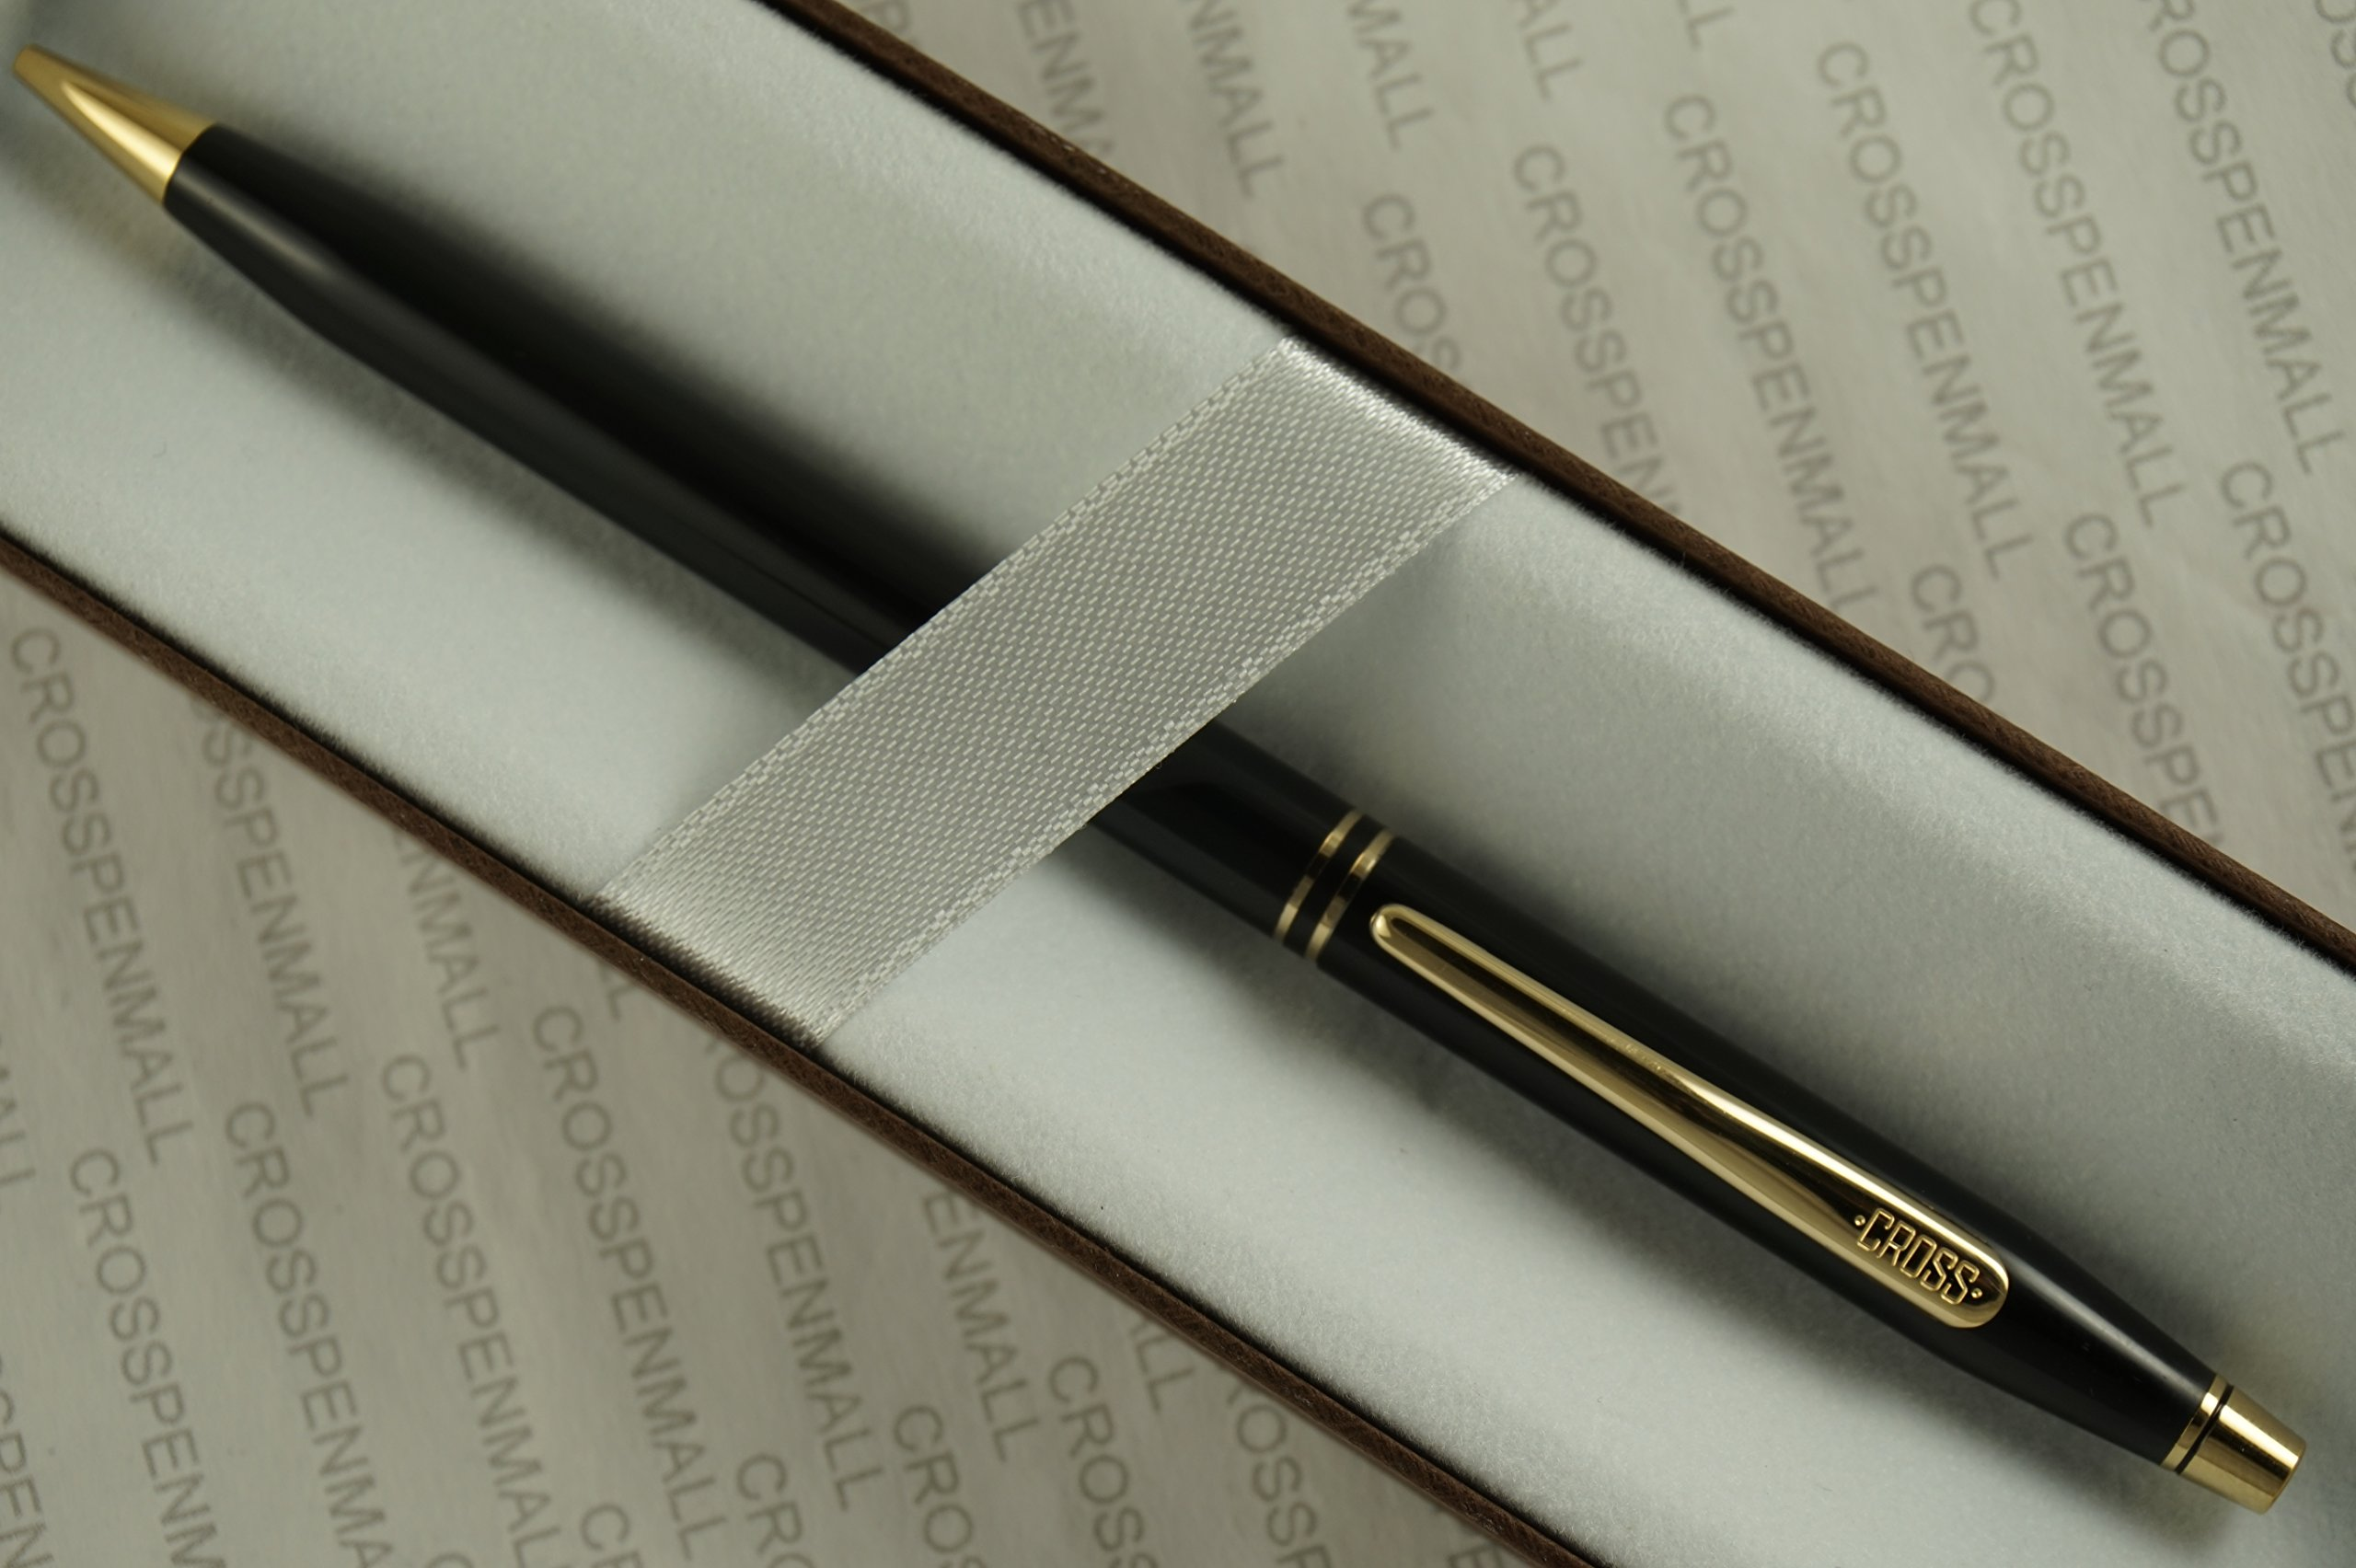 Cross Made in the USA Signature Century Classic International Collection Black Mechanical Pencil with 23kt Gold Appointments